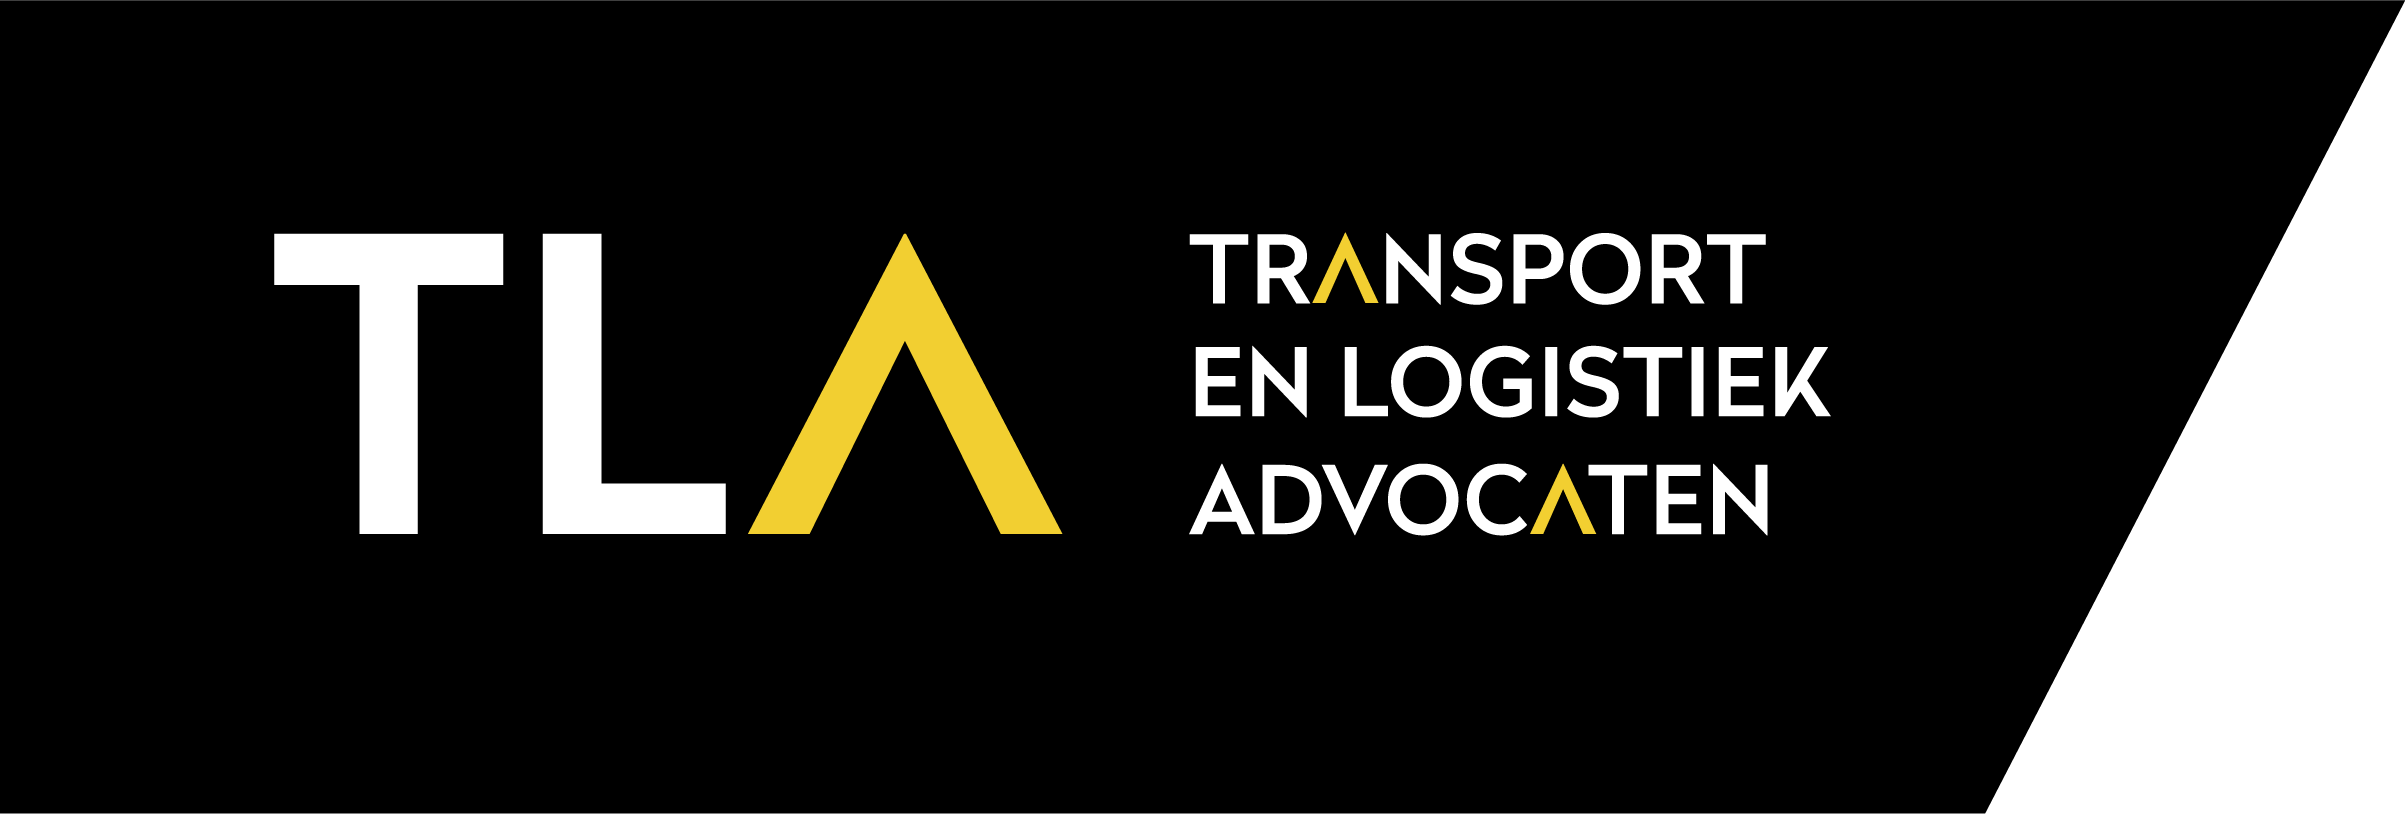 TL-A Transport en logistiek advocaten